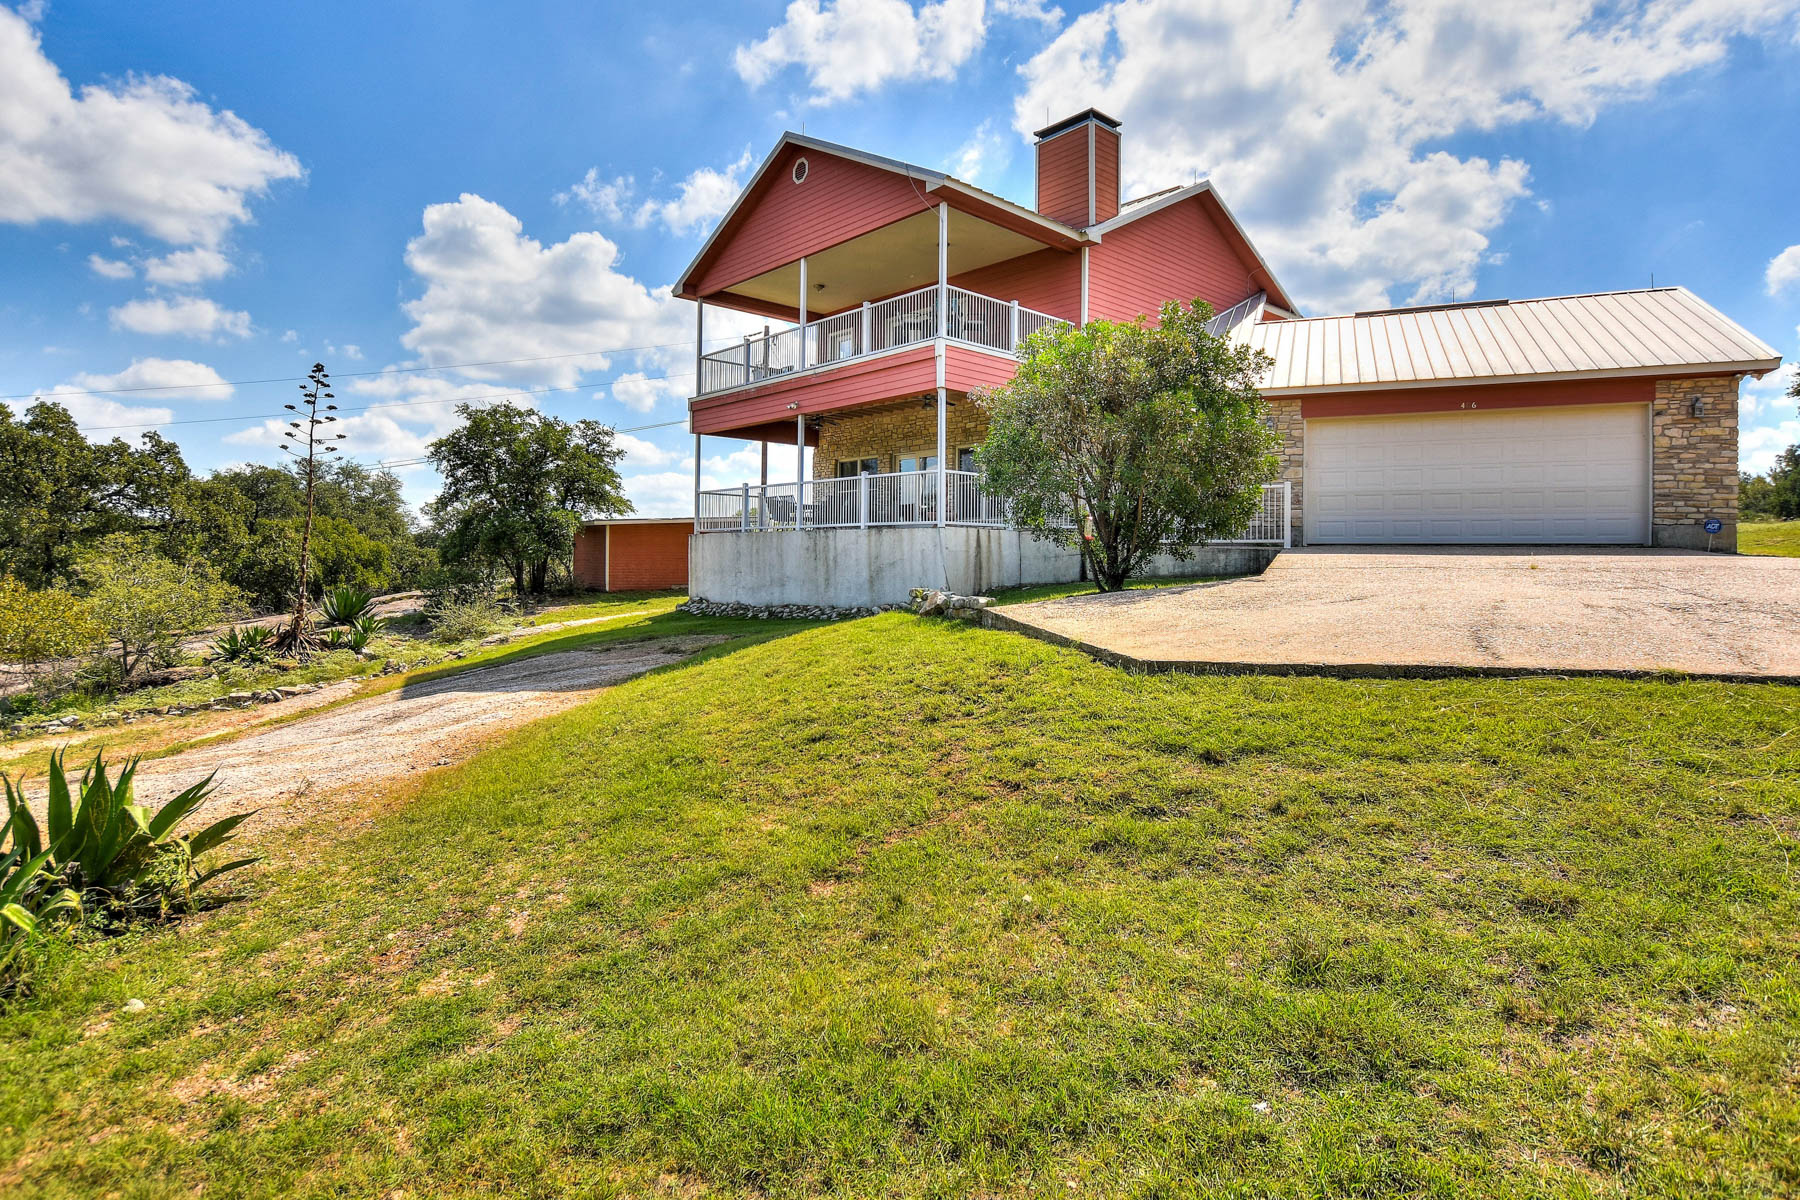 Additional photo for property listing at Great Waterfront Home on Lake LBJ 406 N Lake Dr Granite Shoals, Texas 78654 Estados Unidos